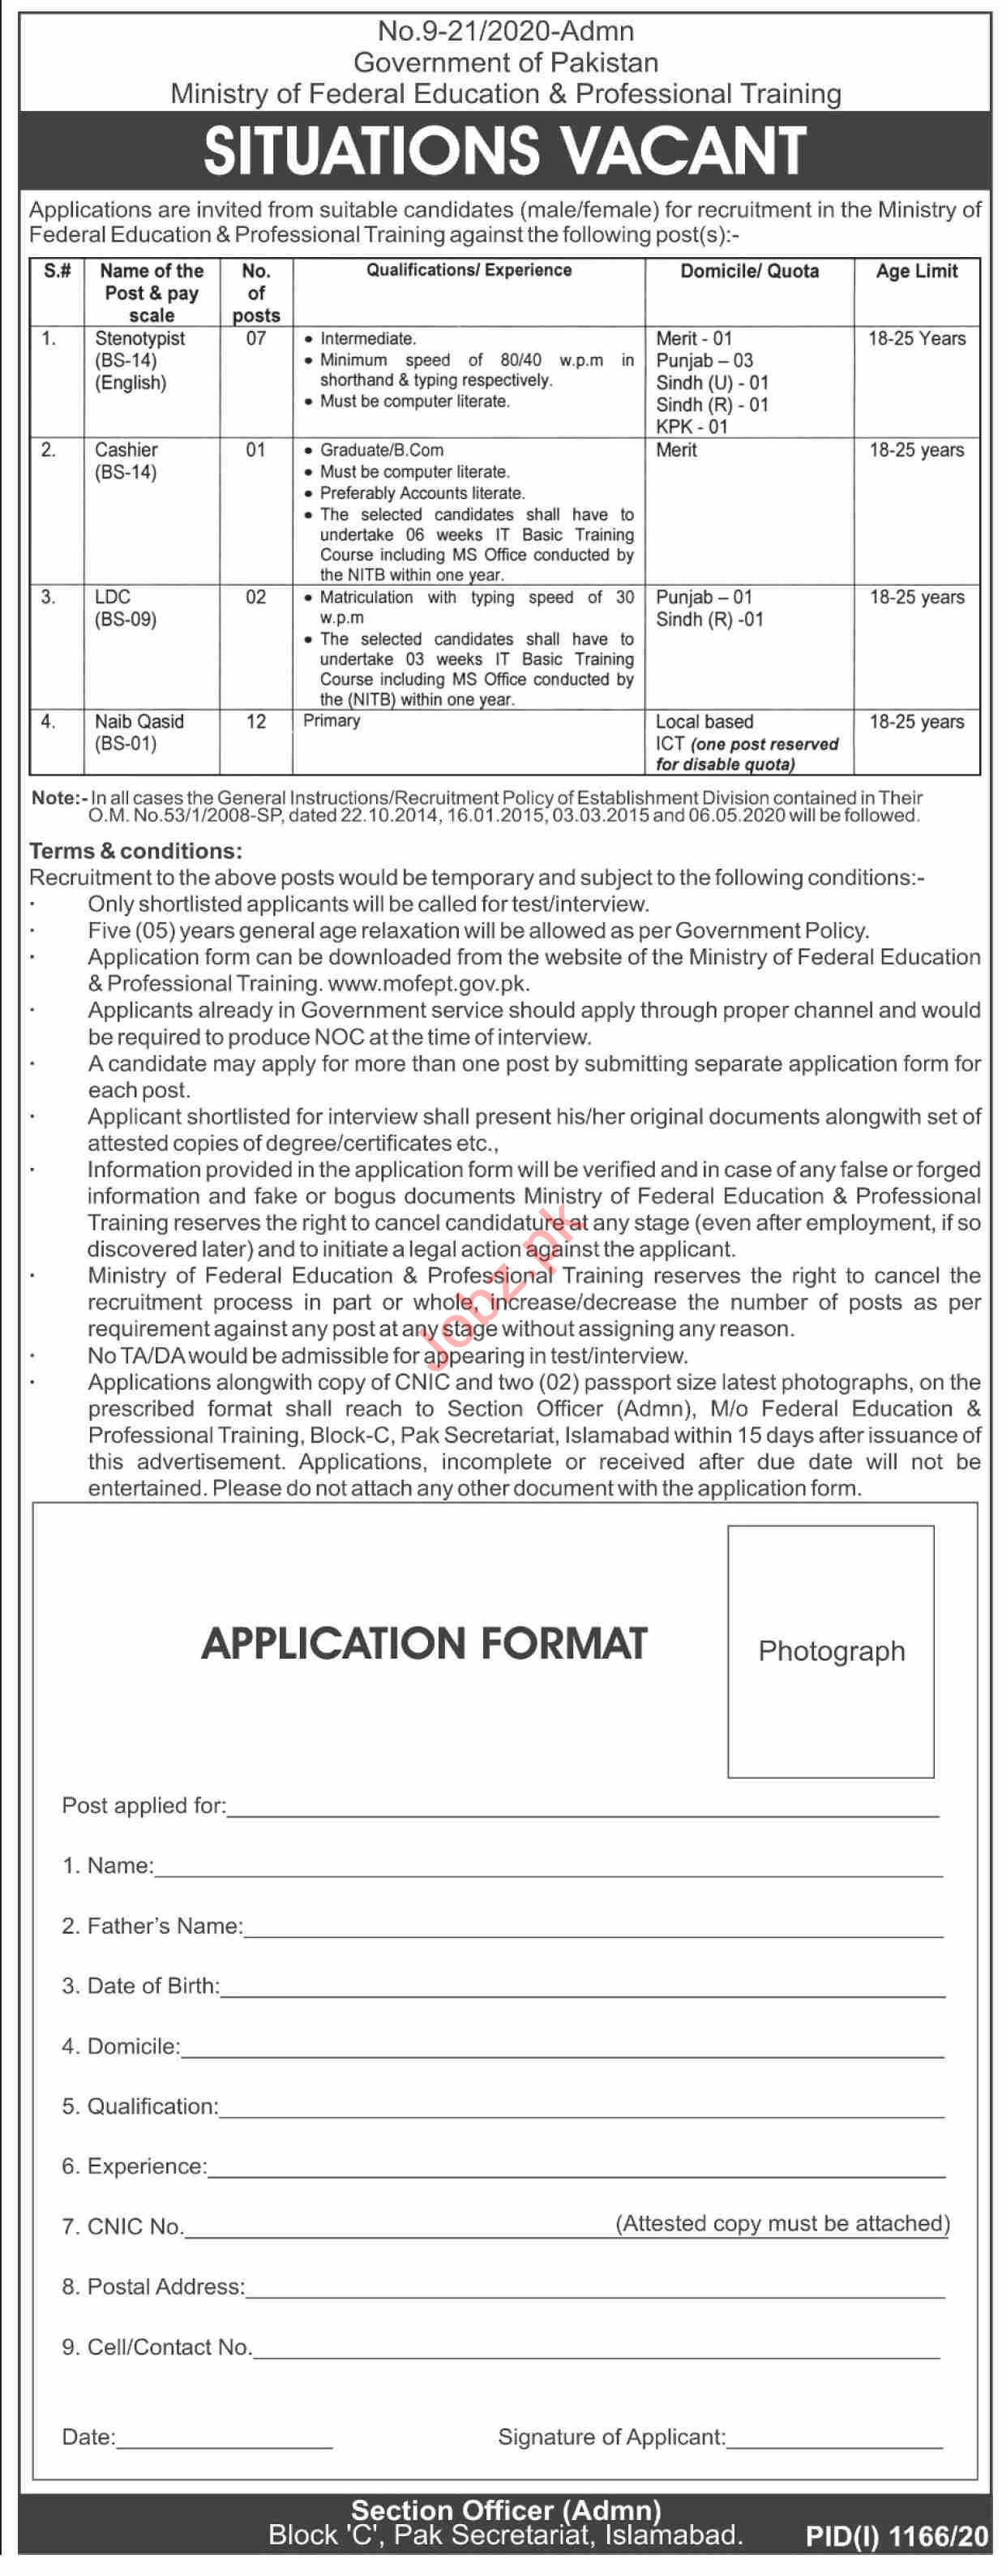 Ministry of Federal Education & Professional Training Jobs